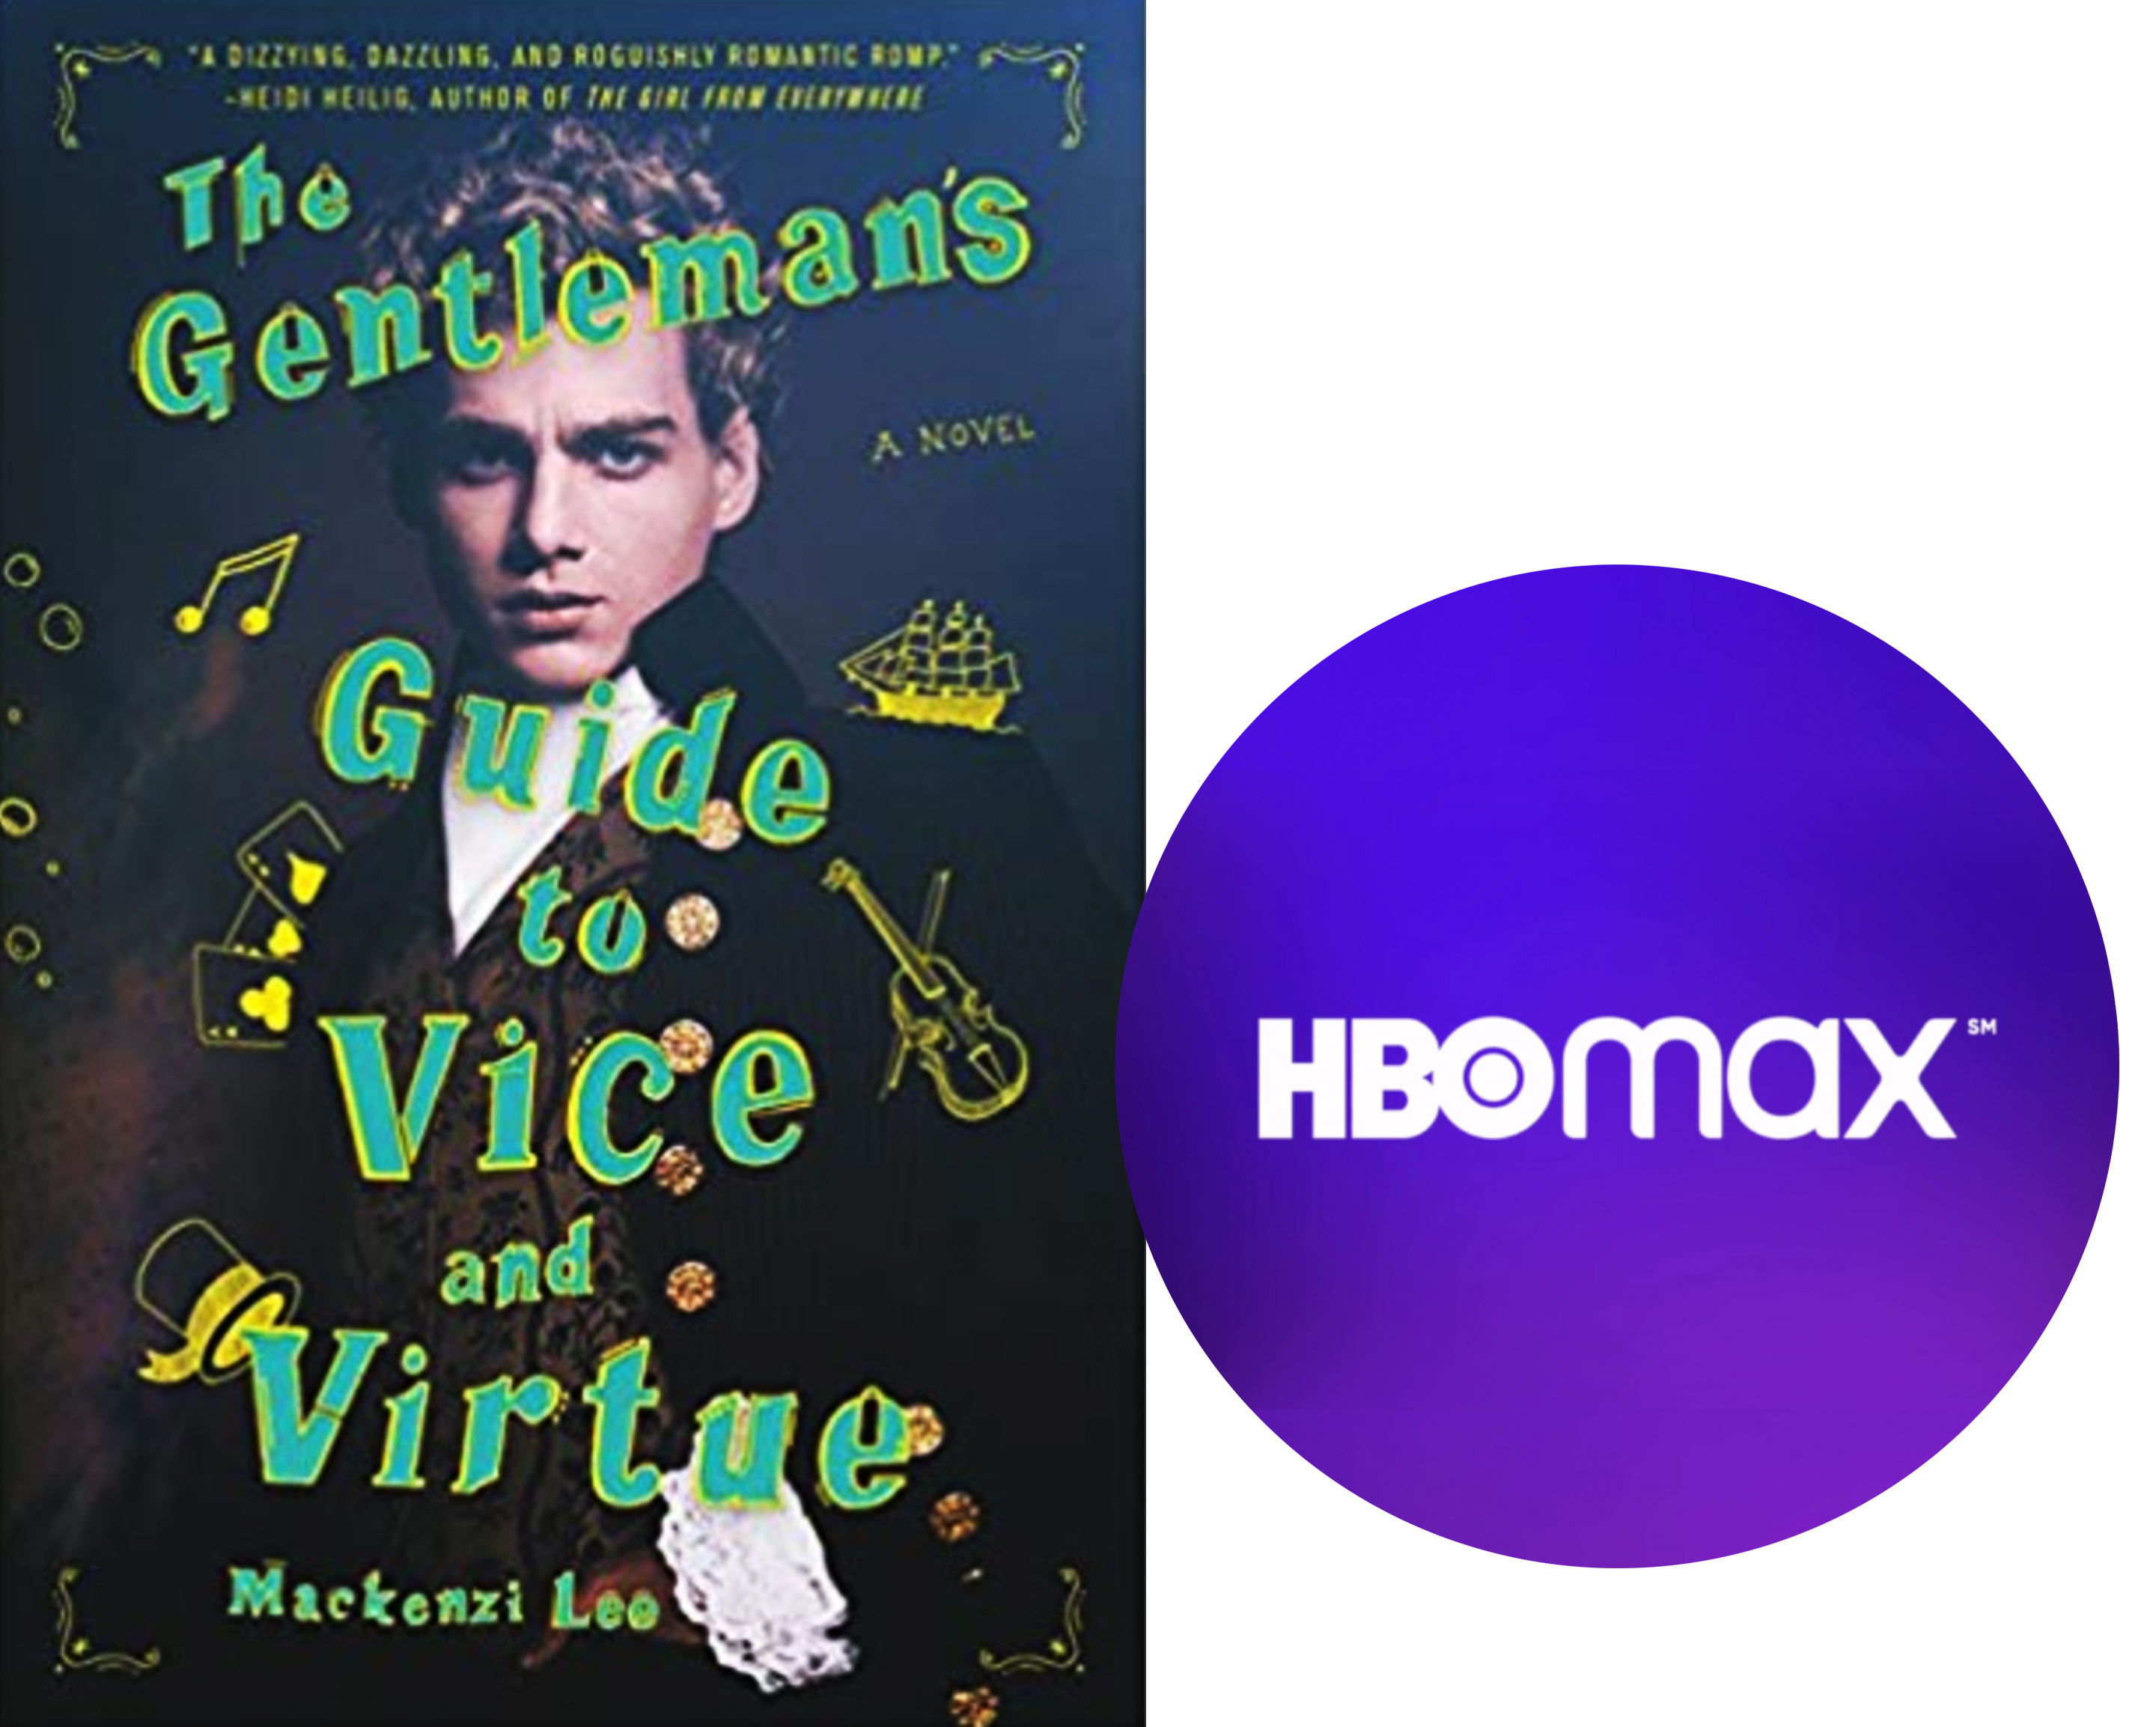 A Gentleman's Guide to Vice and Virtue on HBO Max